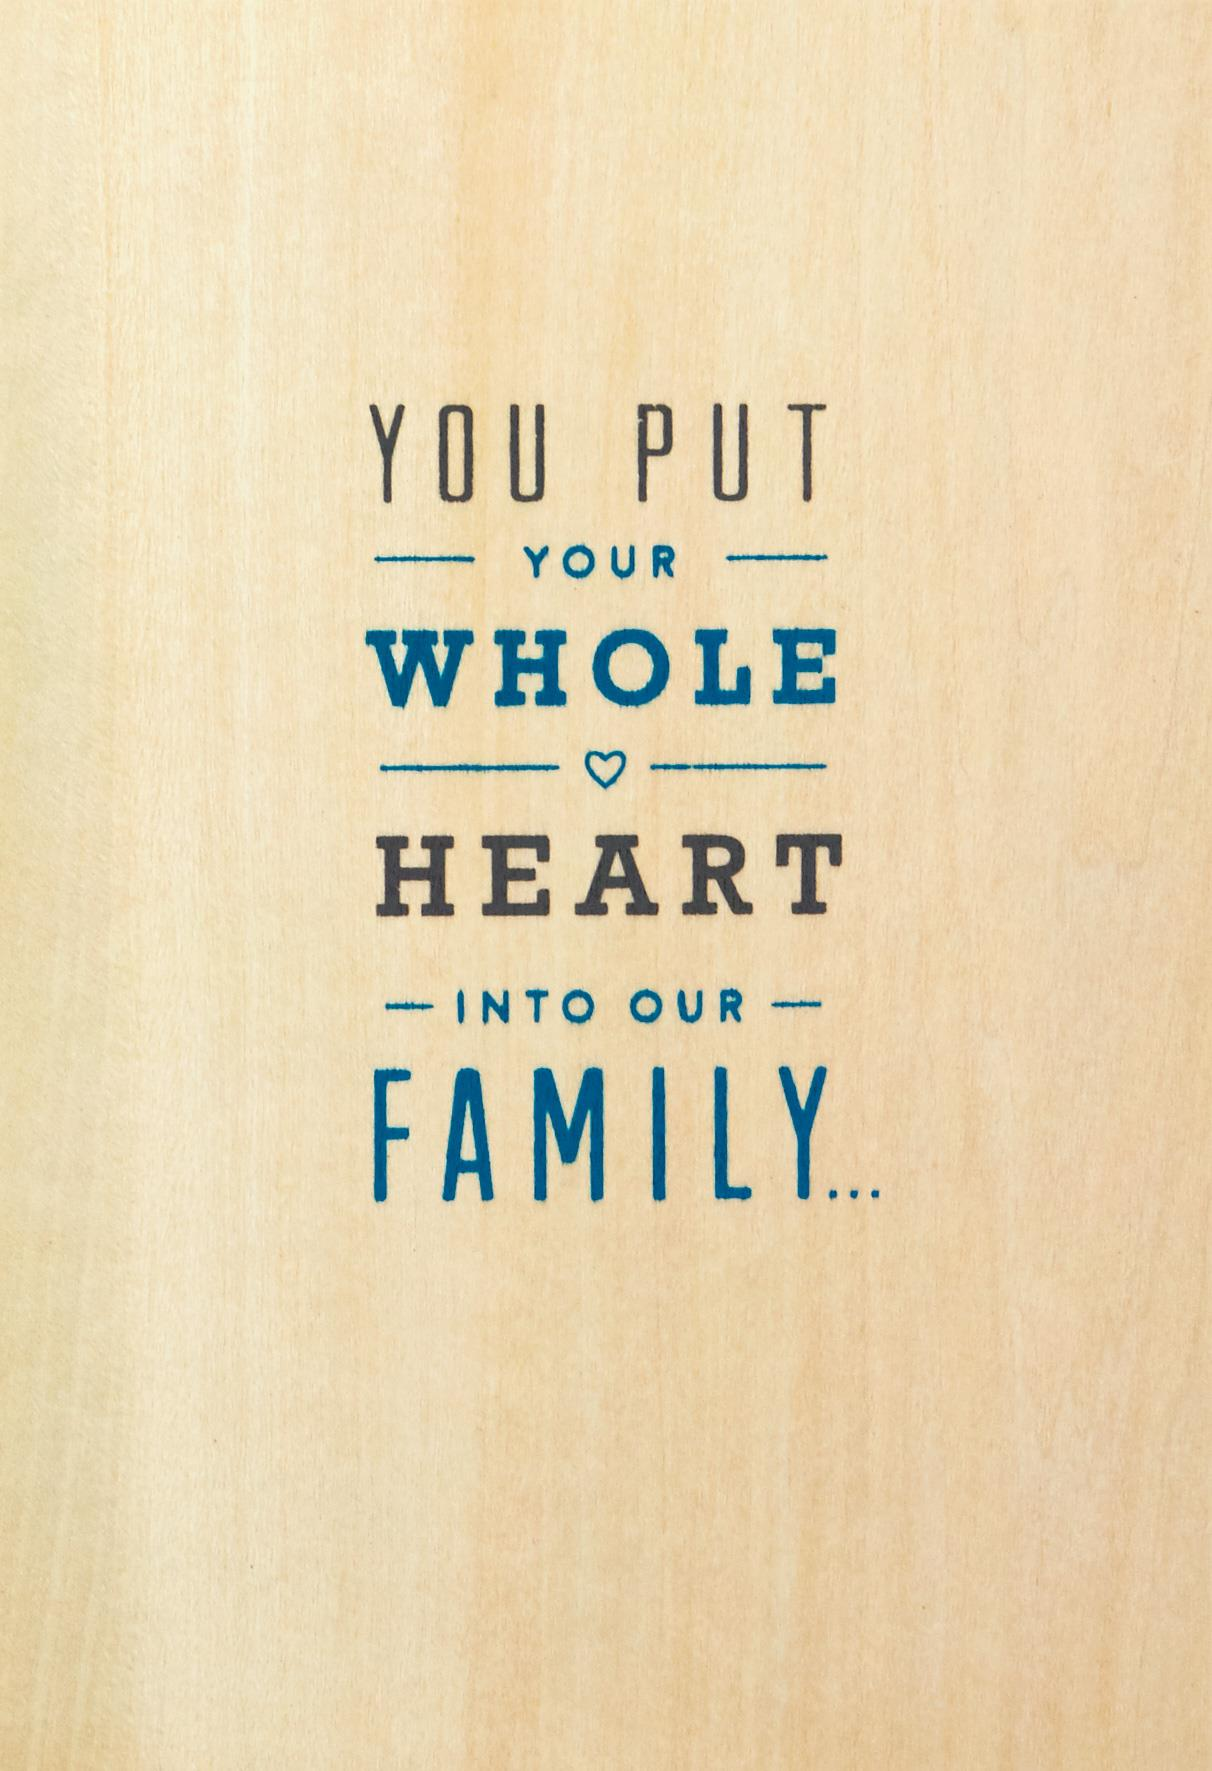 Your whole heart fathers day card for husband greeting cards your whole heart fathers day card for husband m4hsunfo